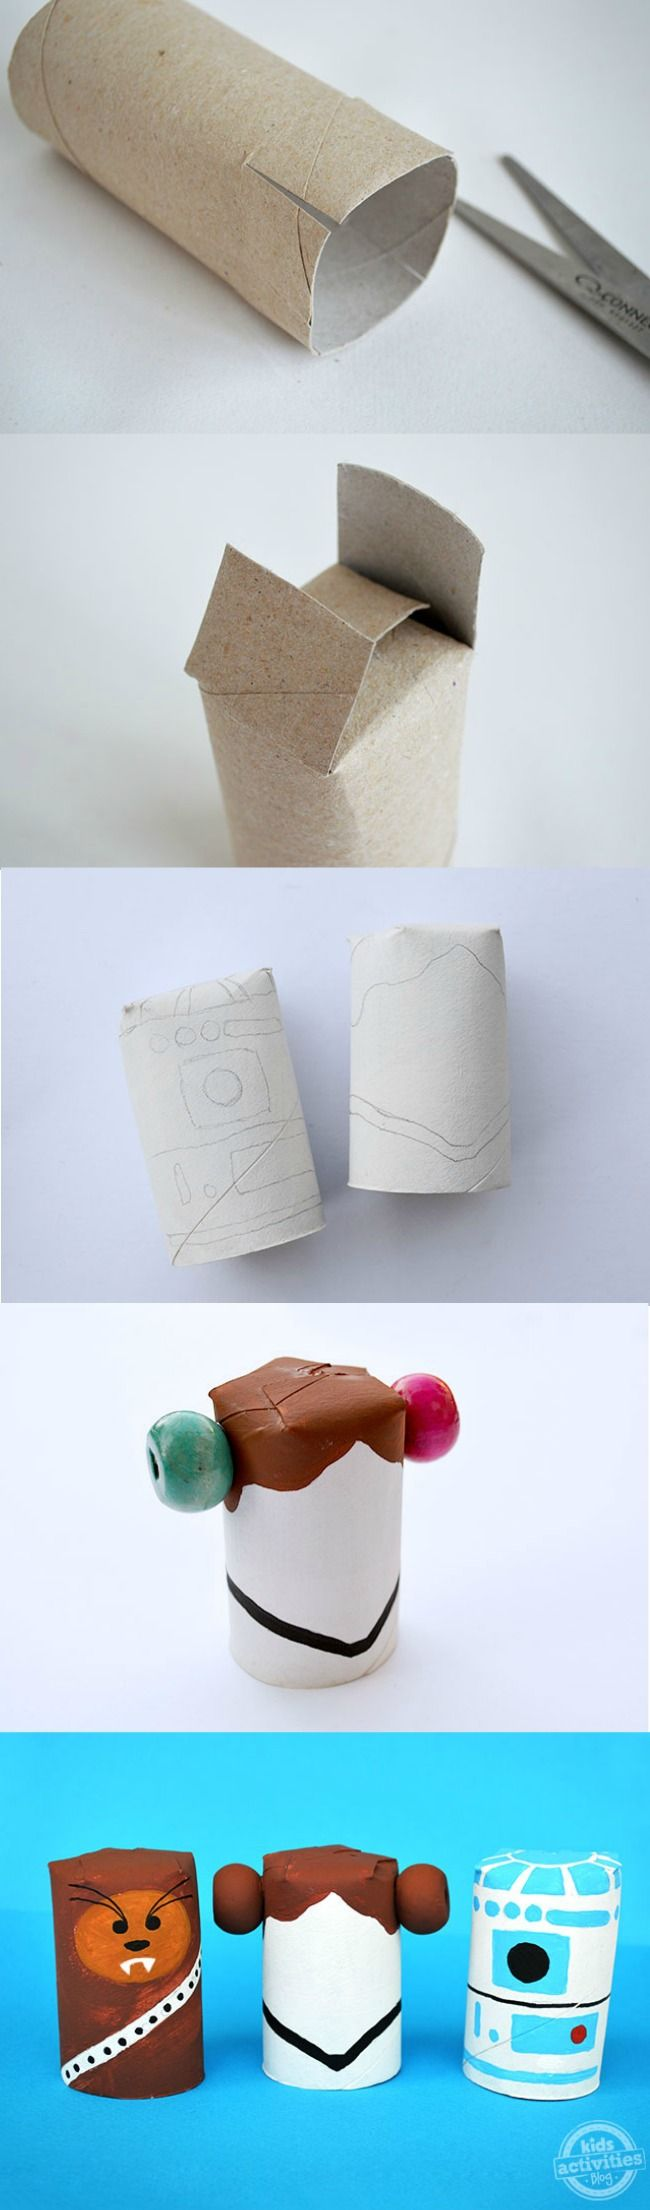 STAR WARS characters from toilet paper rolls? Complete crafty genius.